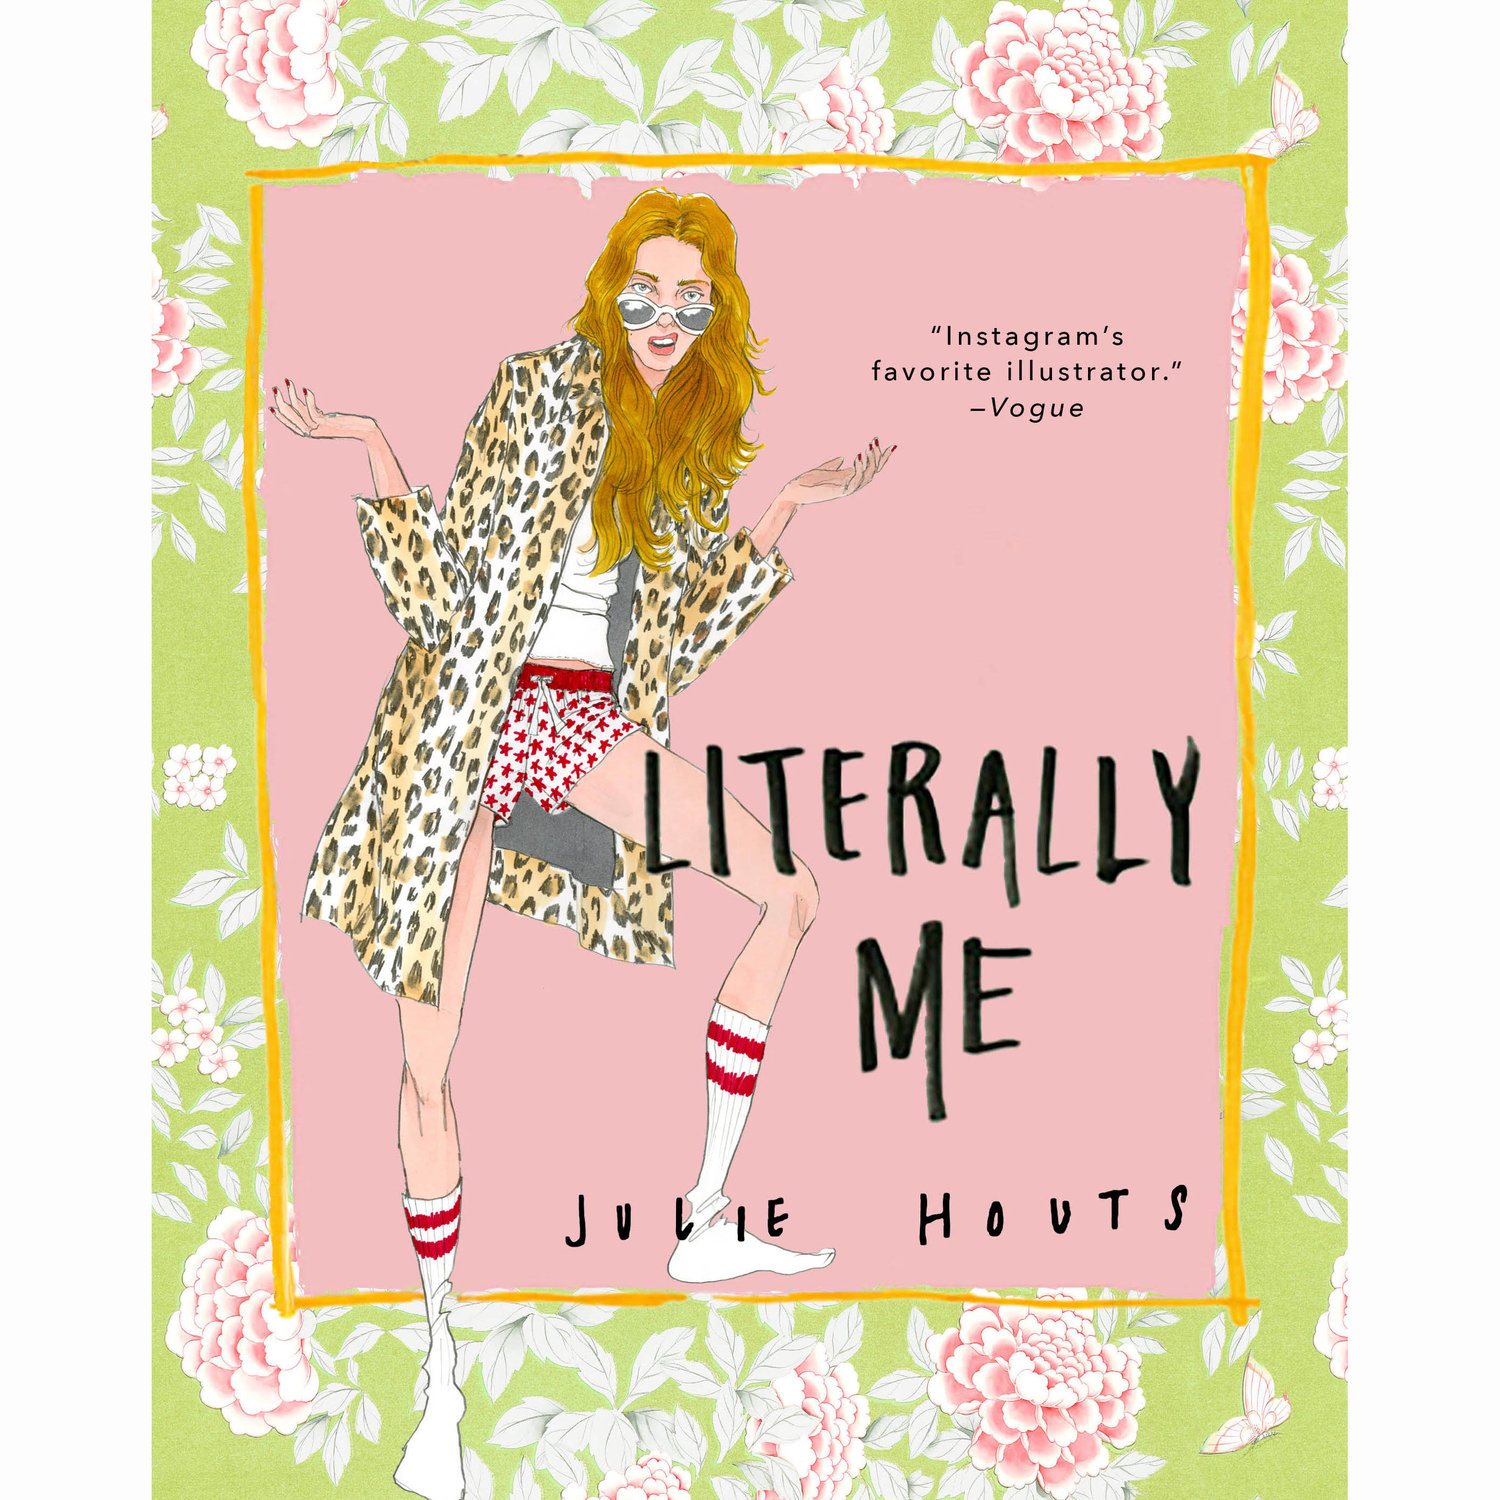 Instagram illustrator extraordinaire, Julie Houts, announced she is releasing a book of her popular illustrations.